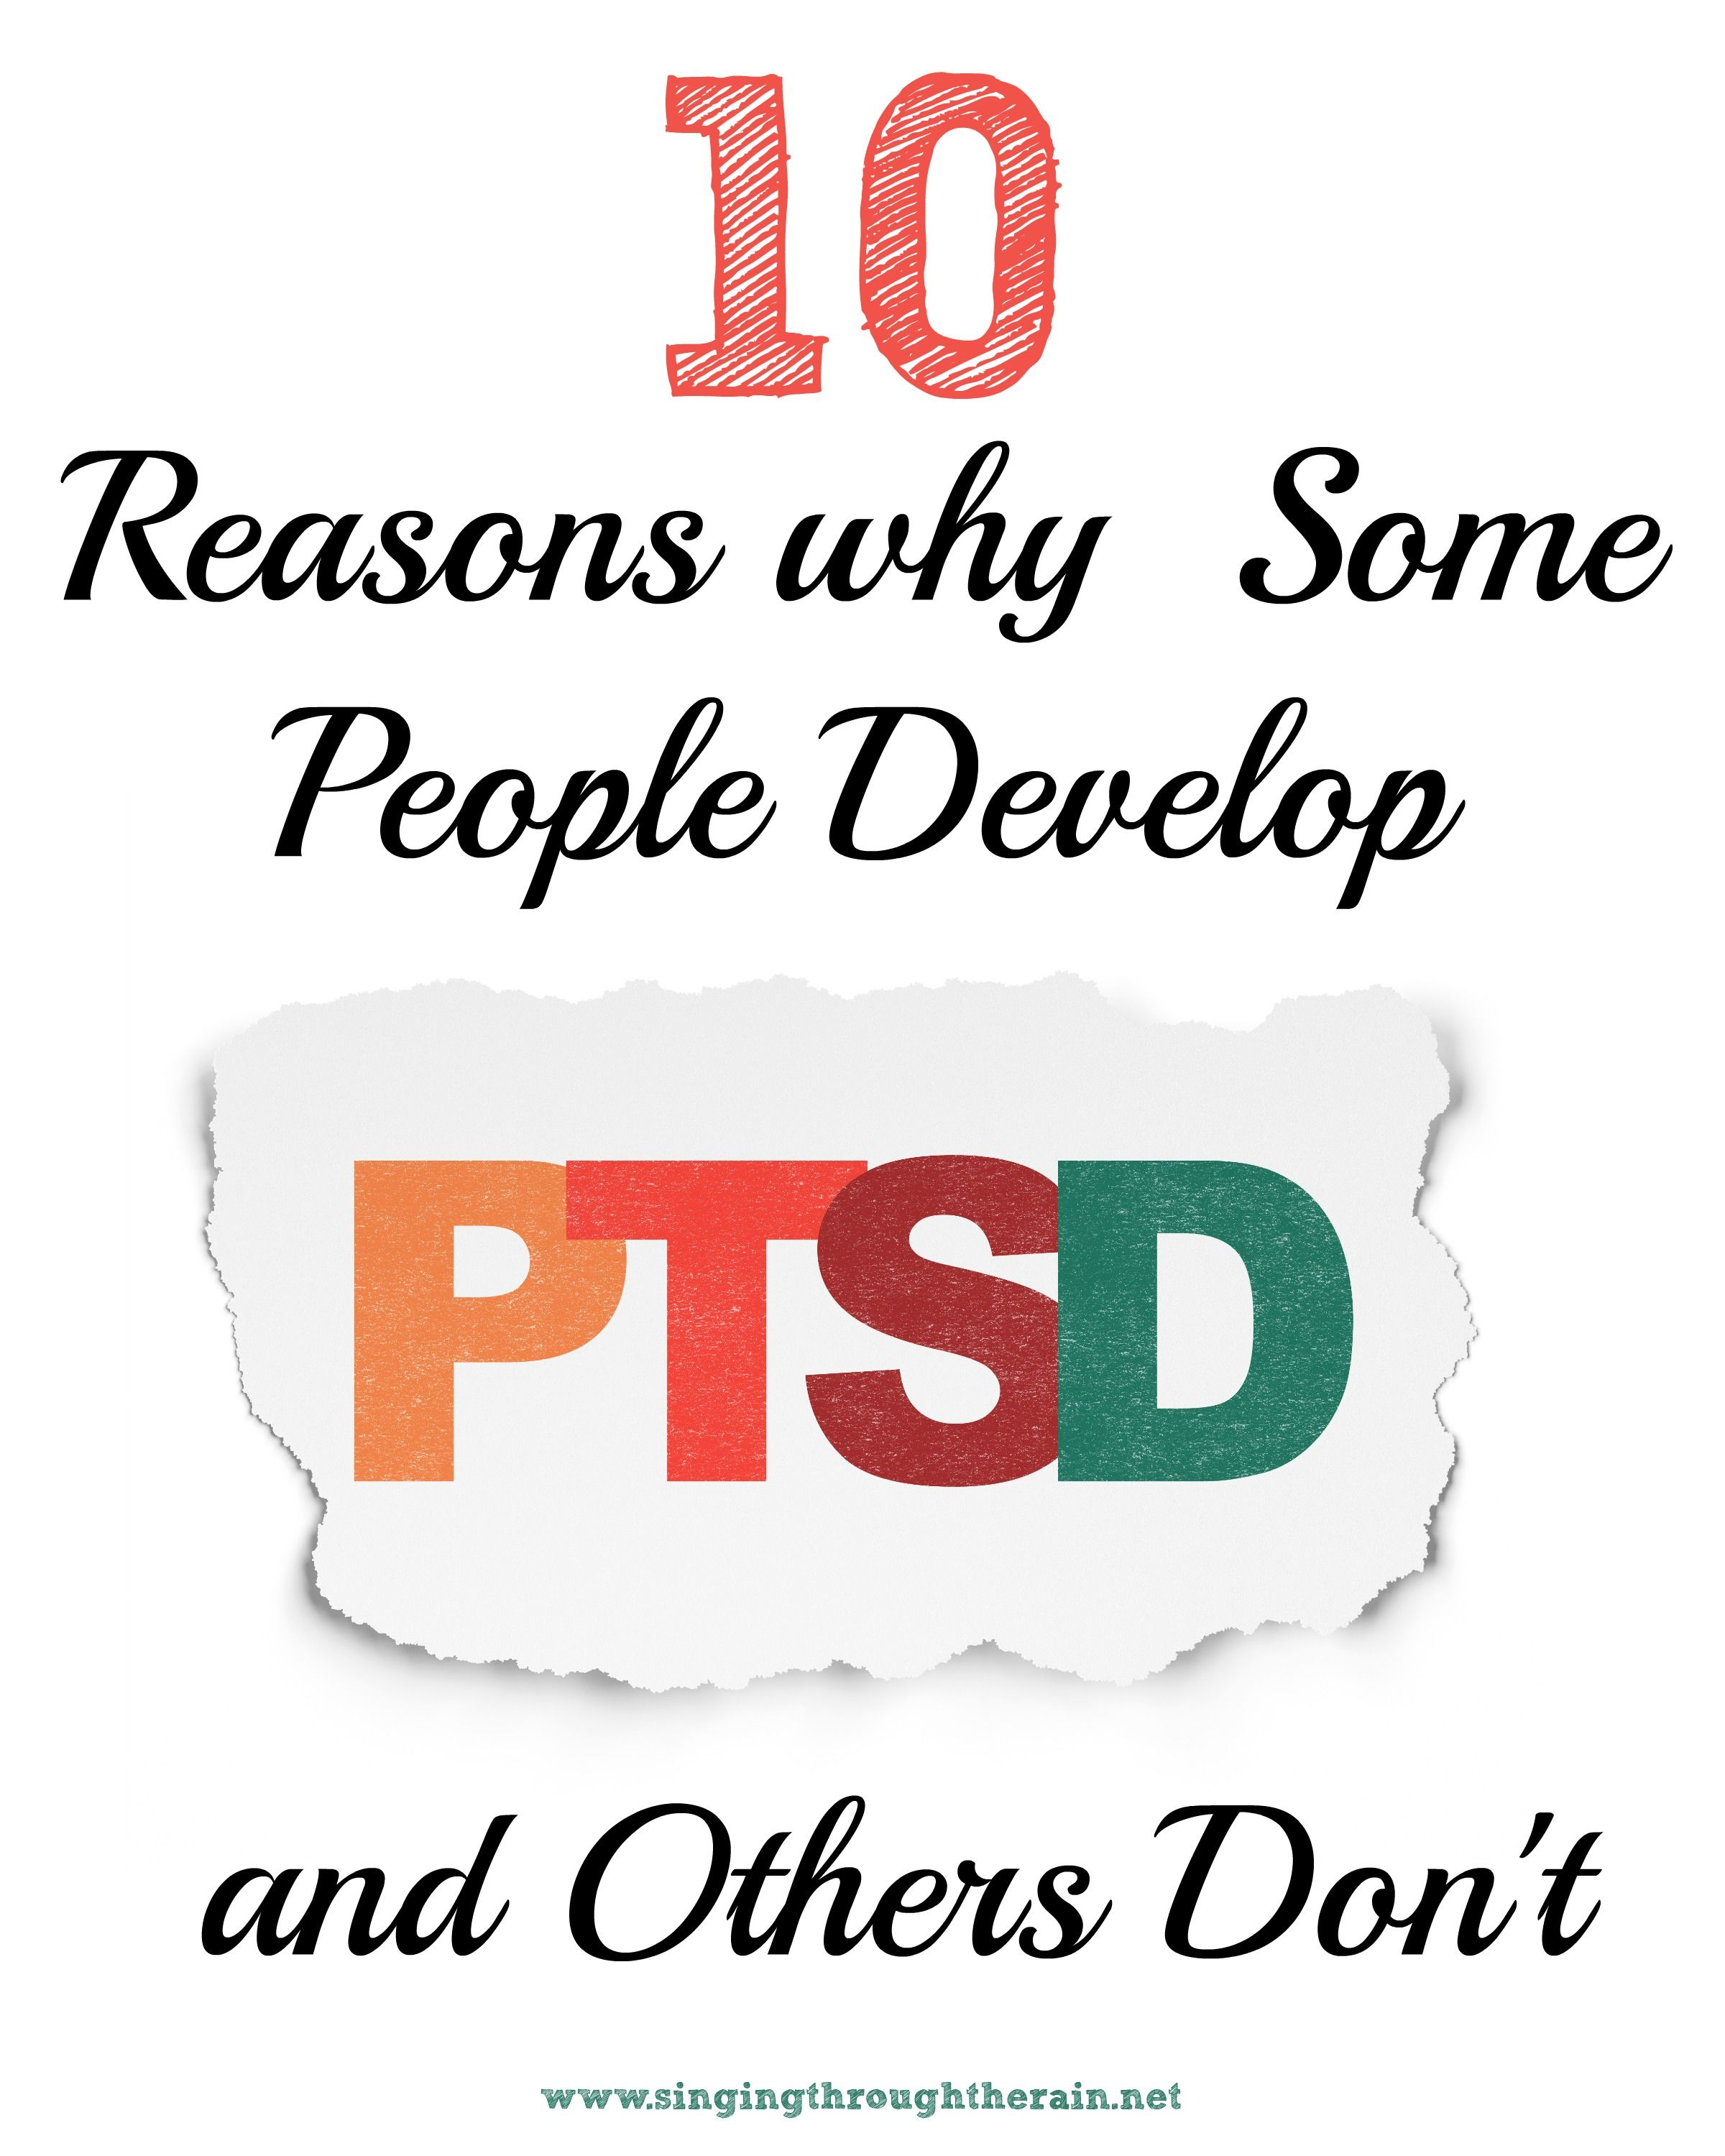 Why Are Some Plants Rare Look To Their Ability To Adapt: 10 Reasons Why Some People Develop PTSD And Others Don't